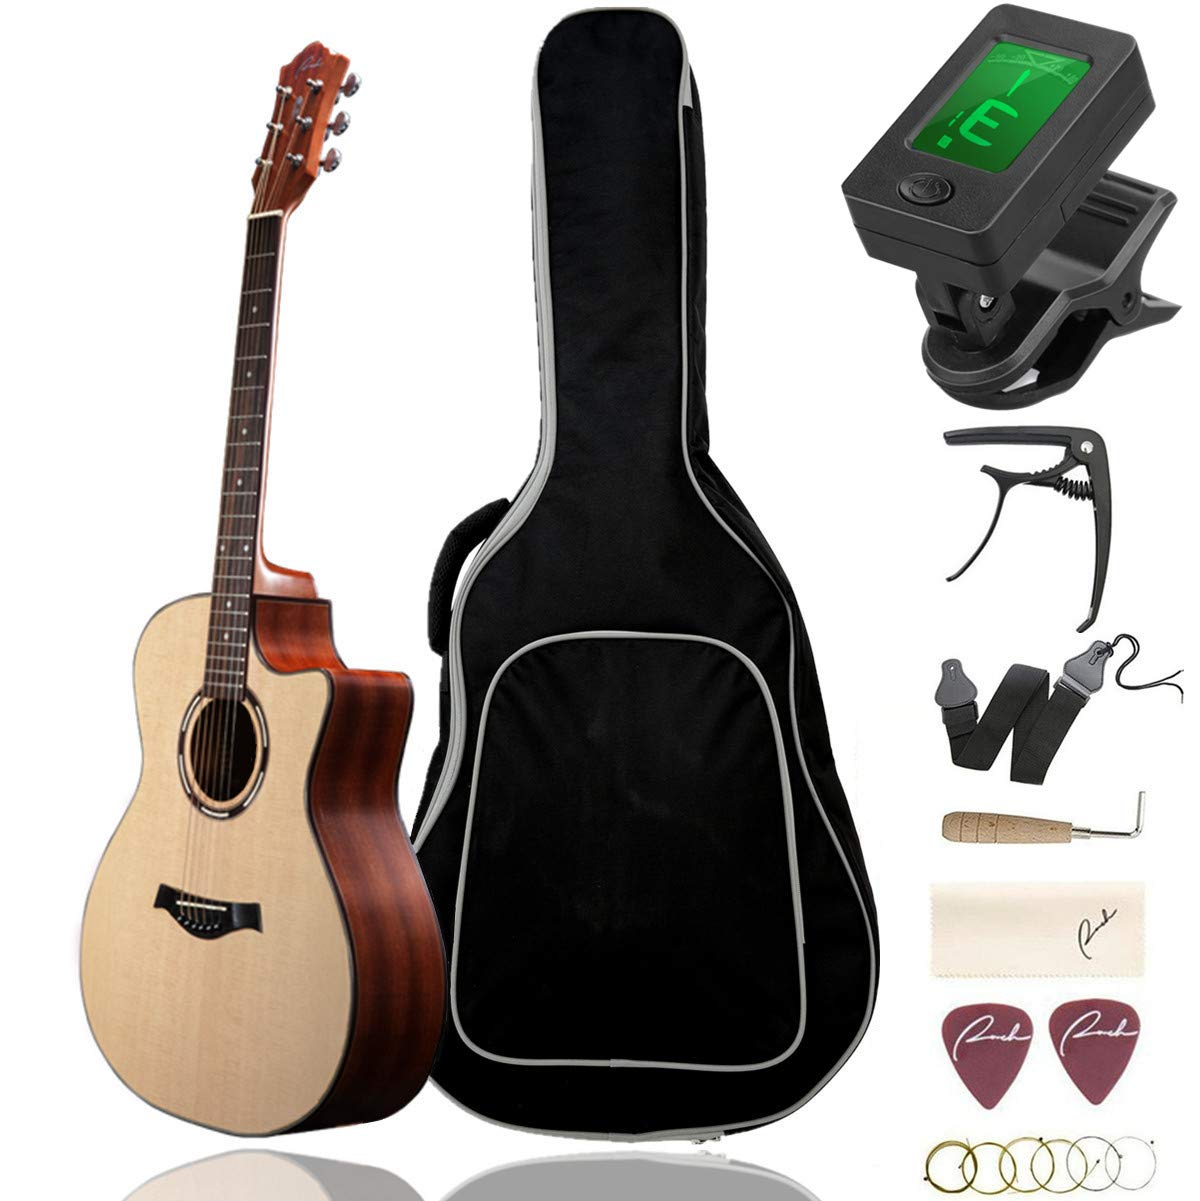 Beginner Acoustic Guitar Ranch 41'' Full Size Solid Wood Cutaway Beginners Steel String Guitars Kit Bundle with Gig Bag/Tuner/Capo/Strings/Strap/Picks Set Starter Pack for Adults (Grand Auditorium) by Ranch